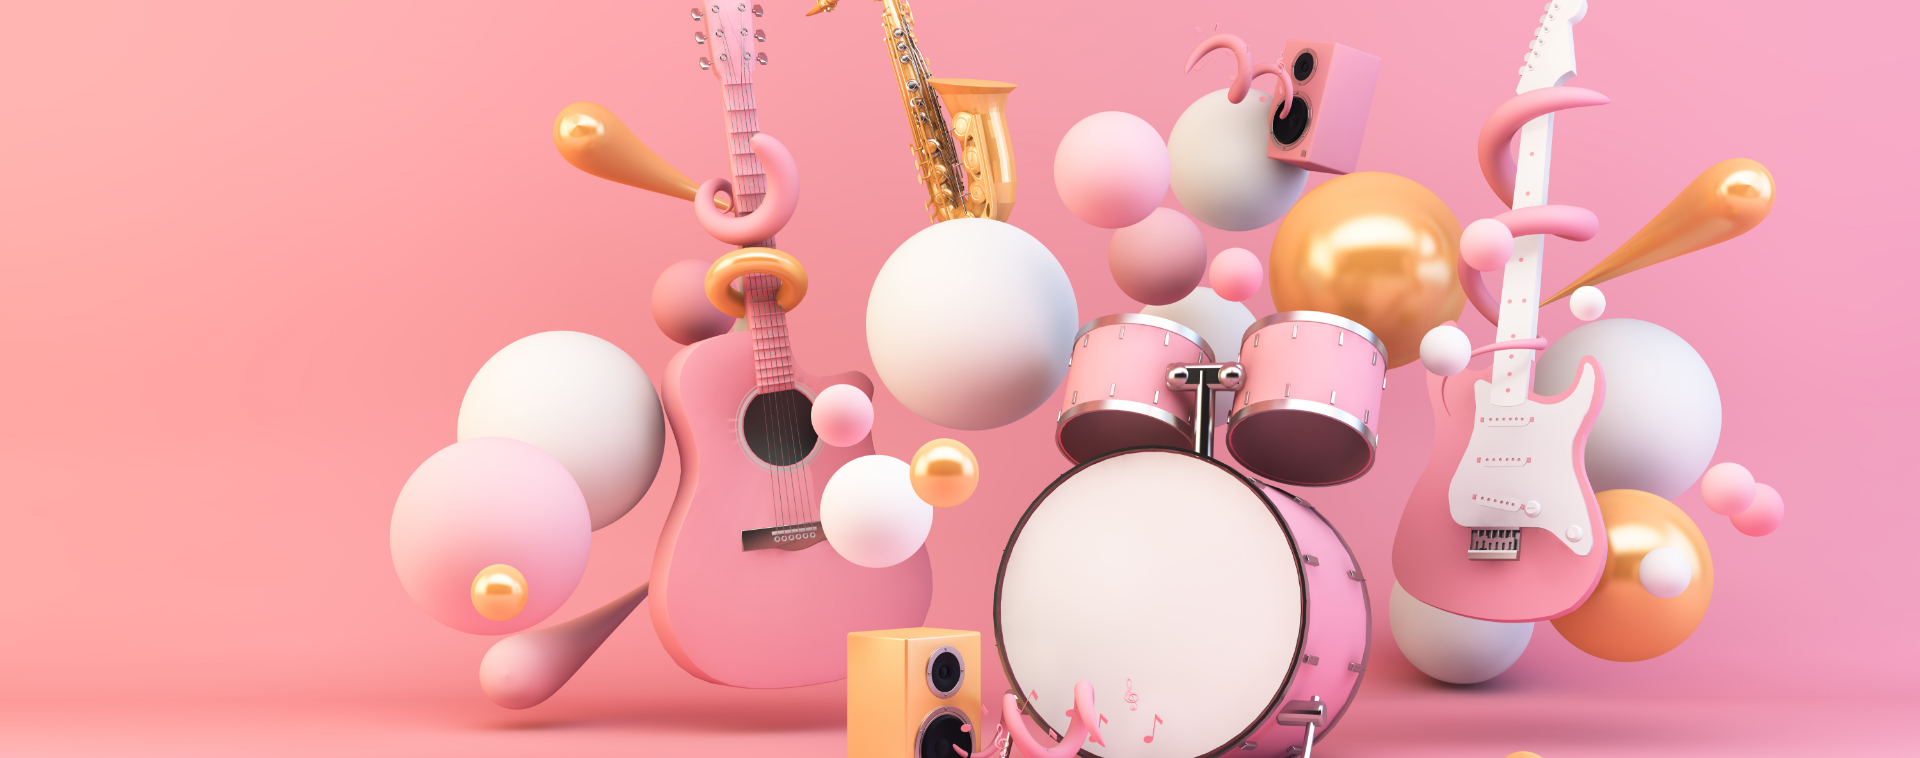 music-instrument-surrounded-by-geometrical-shapes-3d-rendering